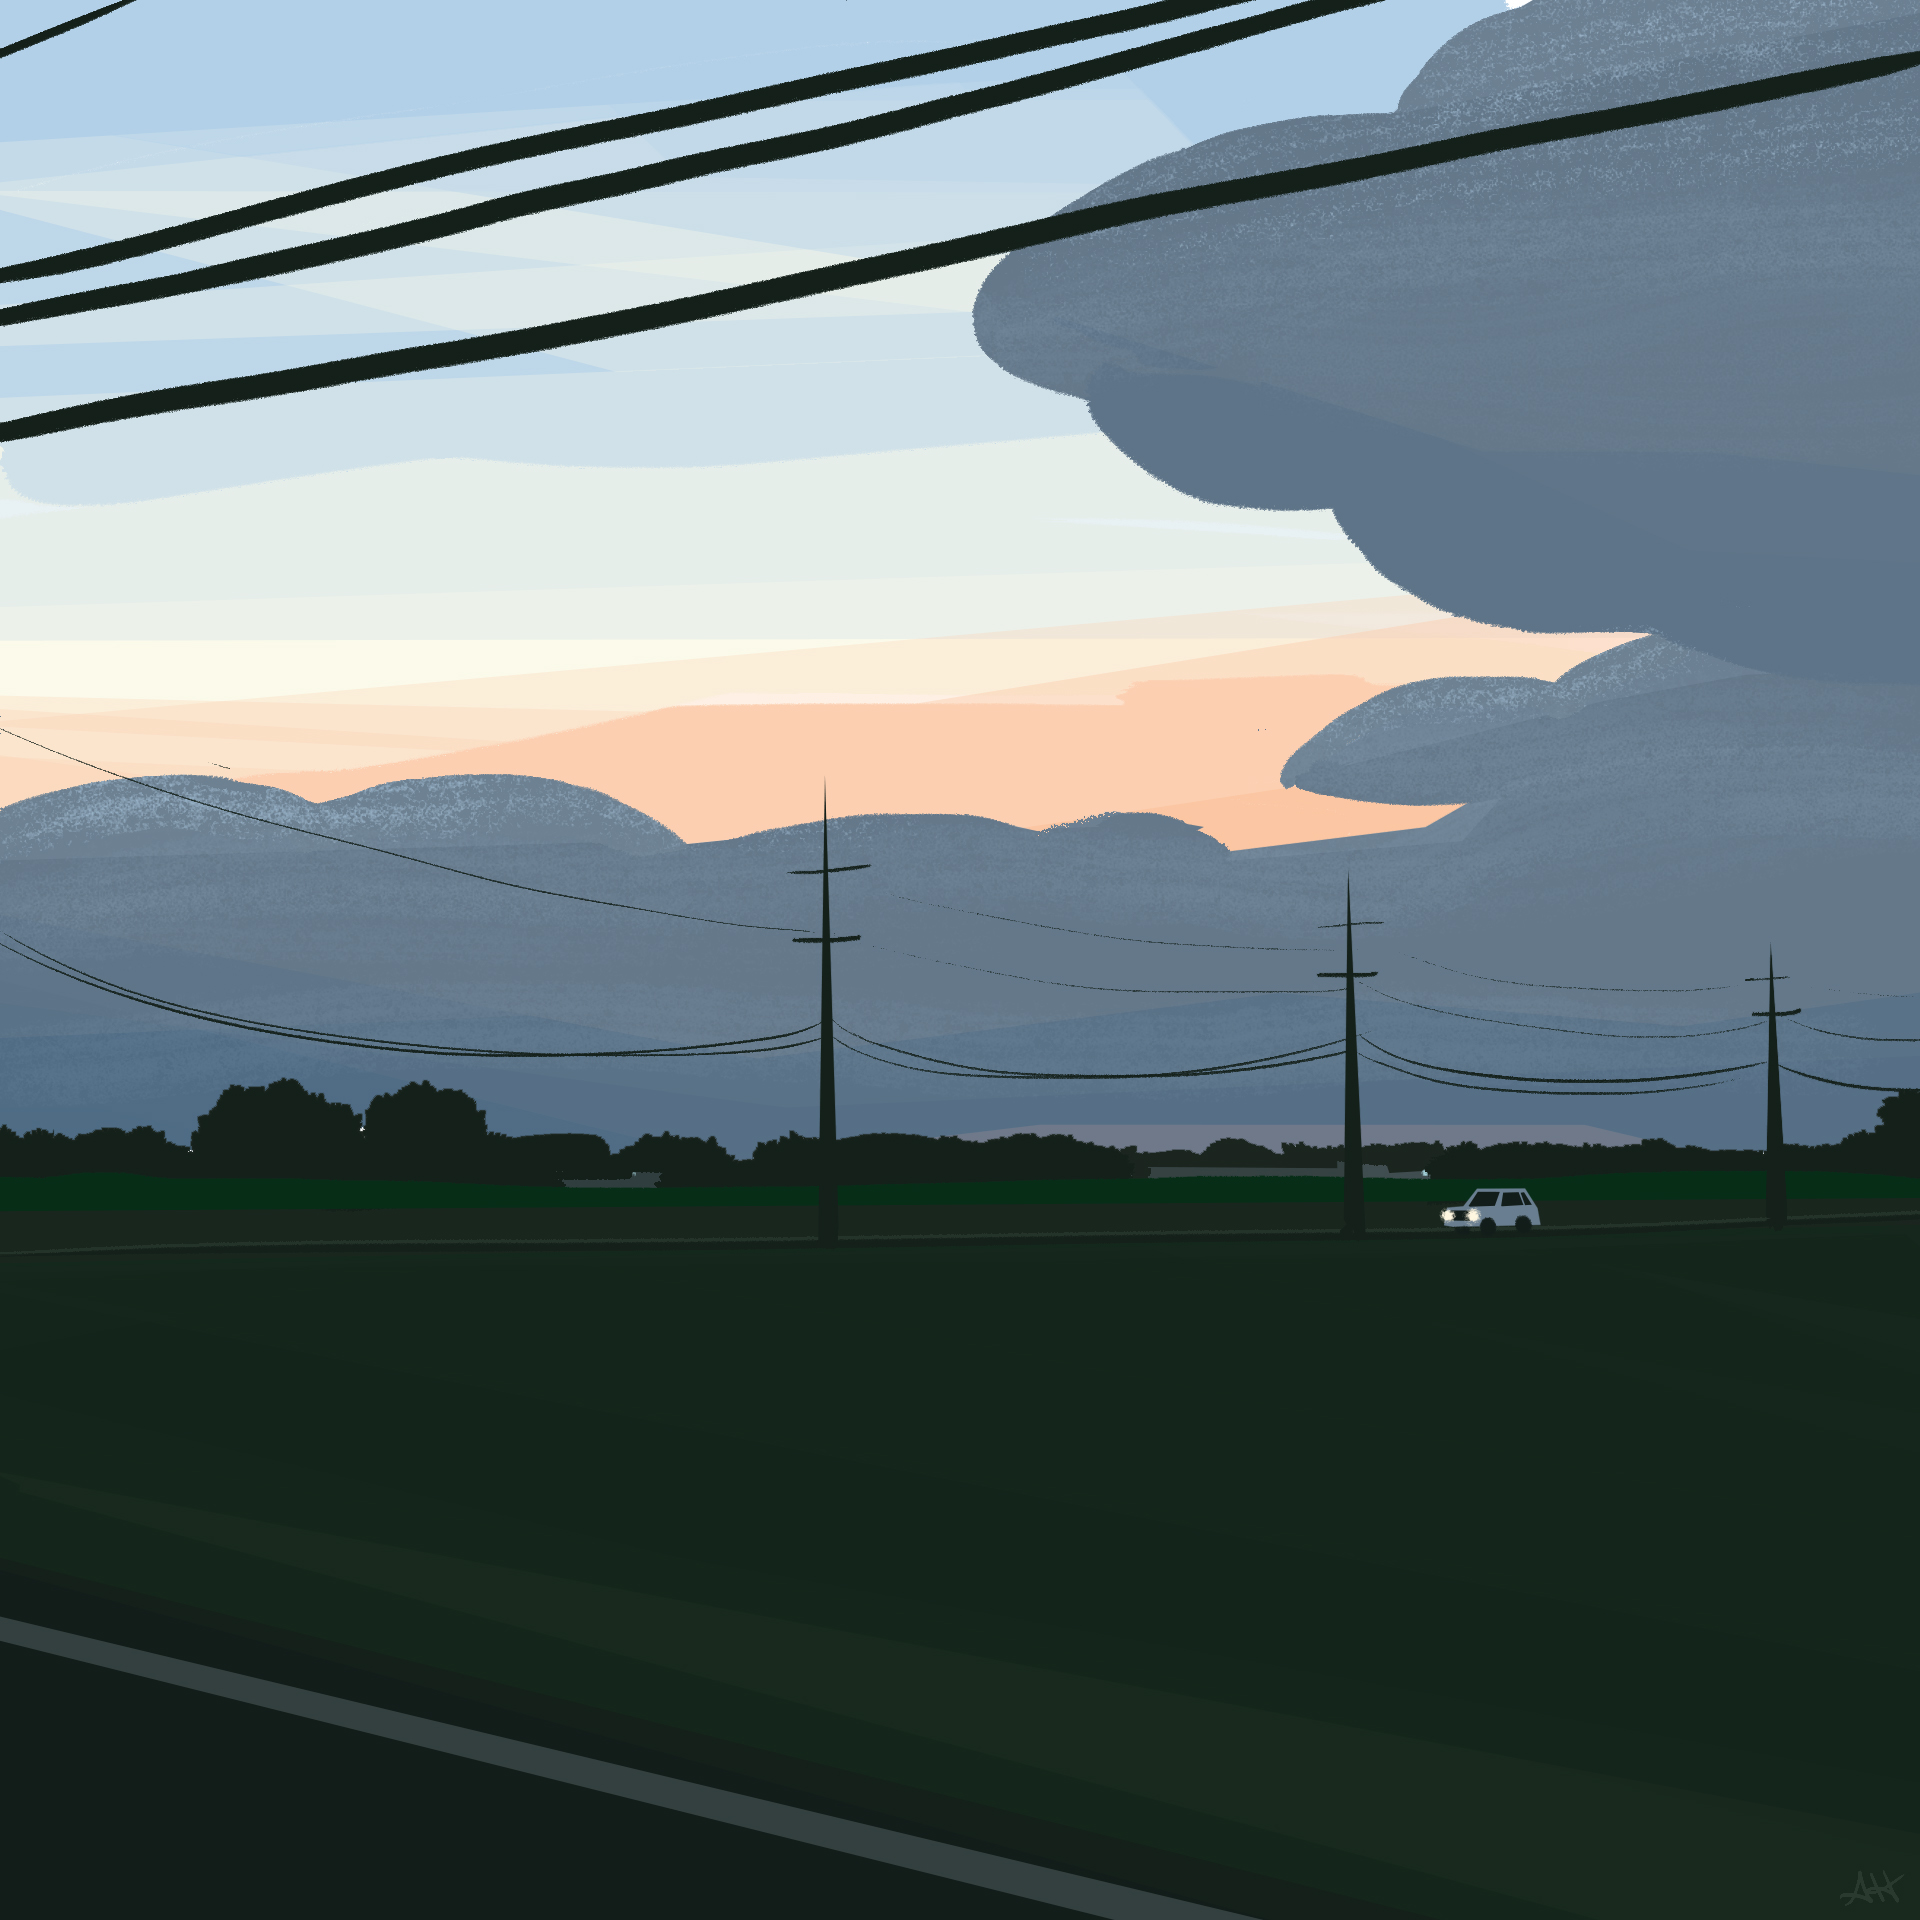 a scene of farmland, power lines, a road, and blue hour skies in the distance by alleanna harris